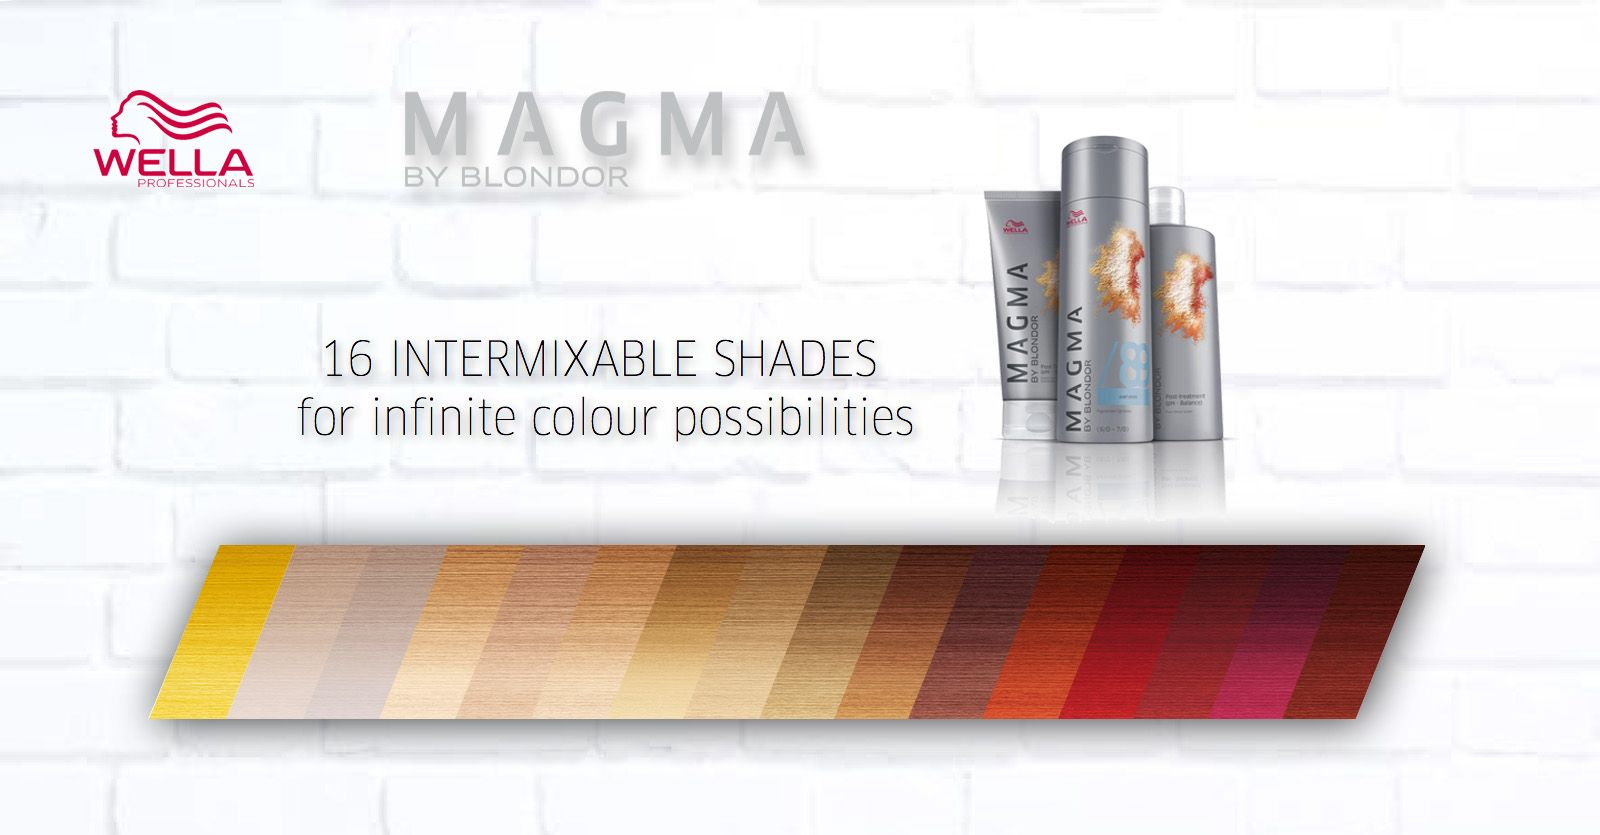 Wella professionals magma by blondor 16 intermixable shades explore color charts new hair colors and more nvjuhfo Choice Image